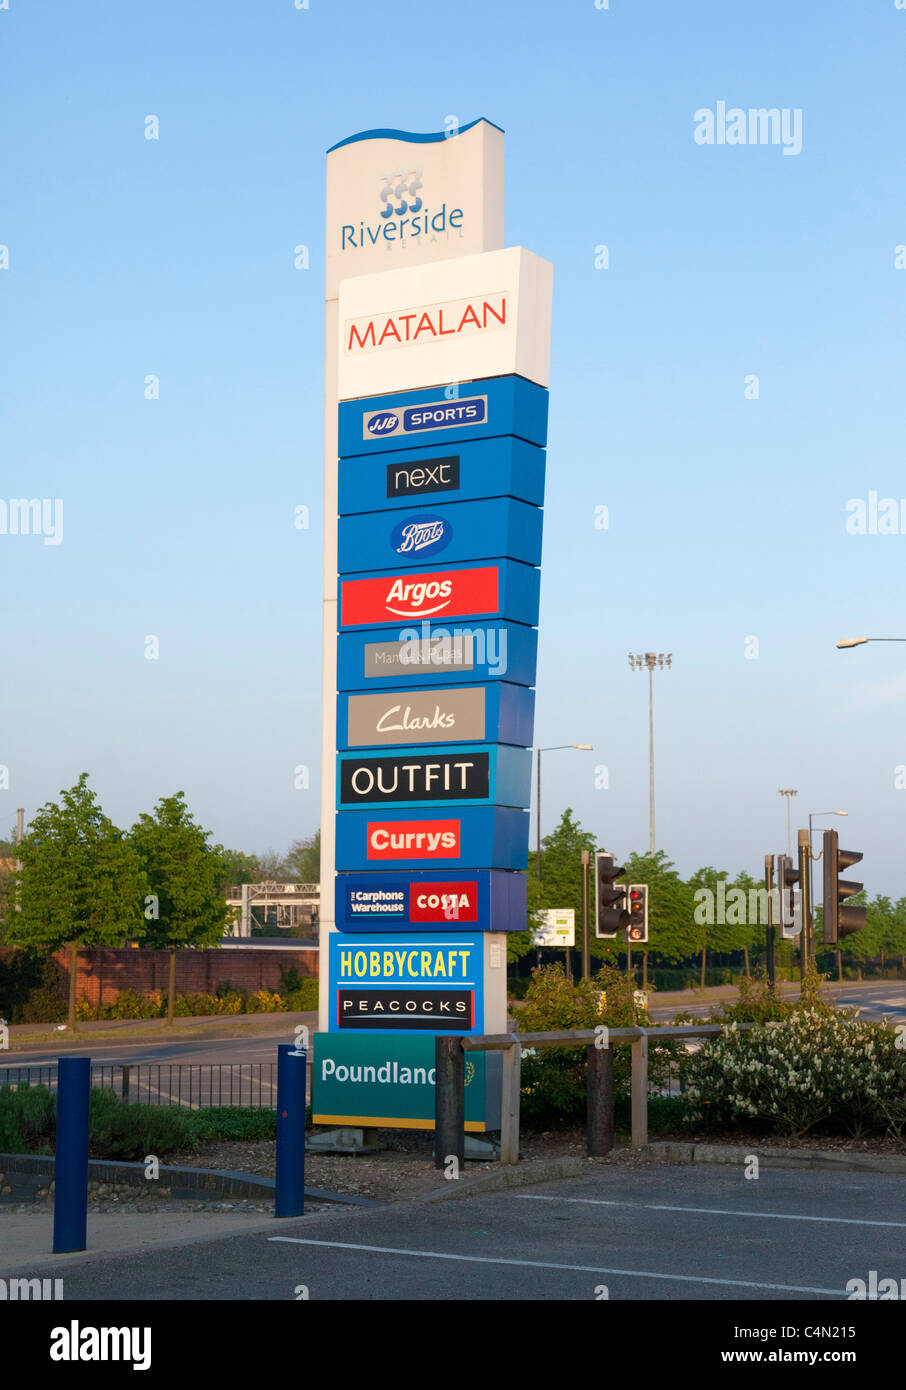 retail park sign showing names of stores, UK - Stock Image